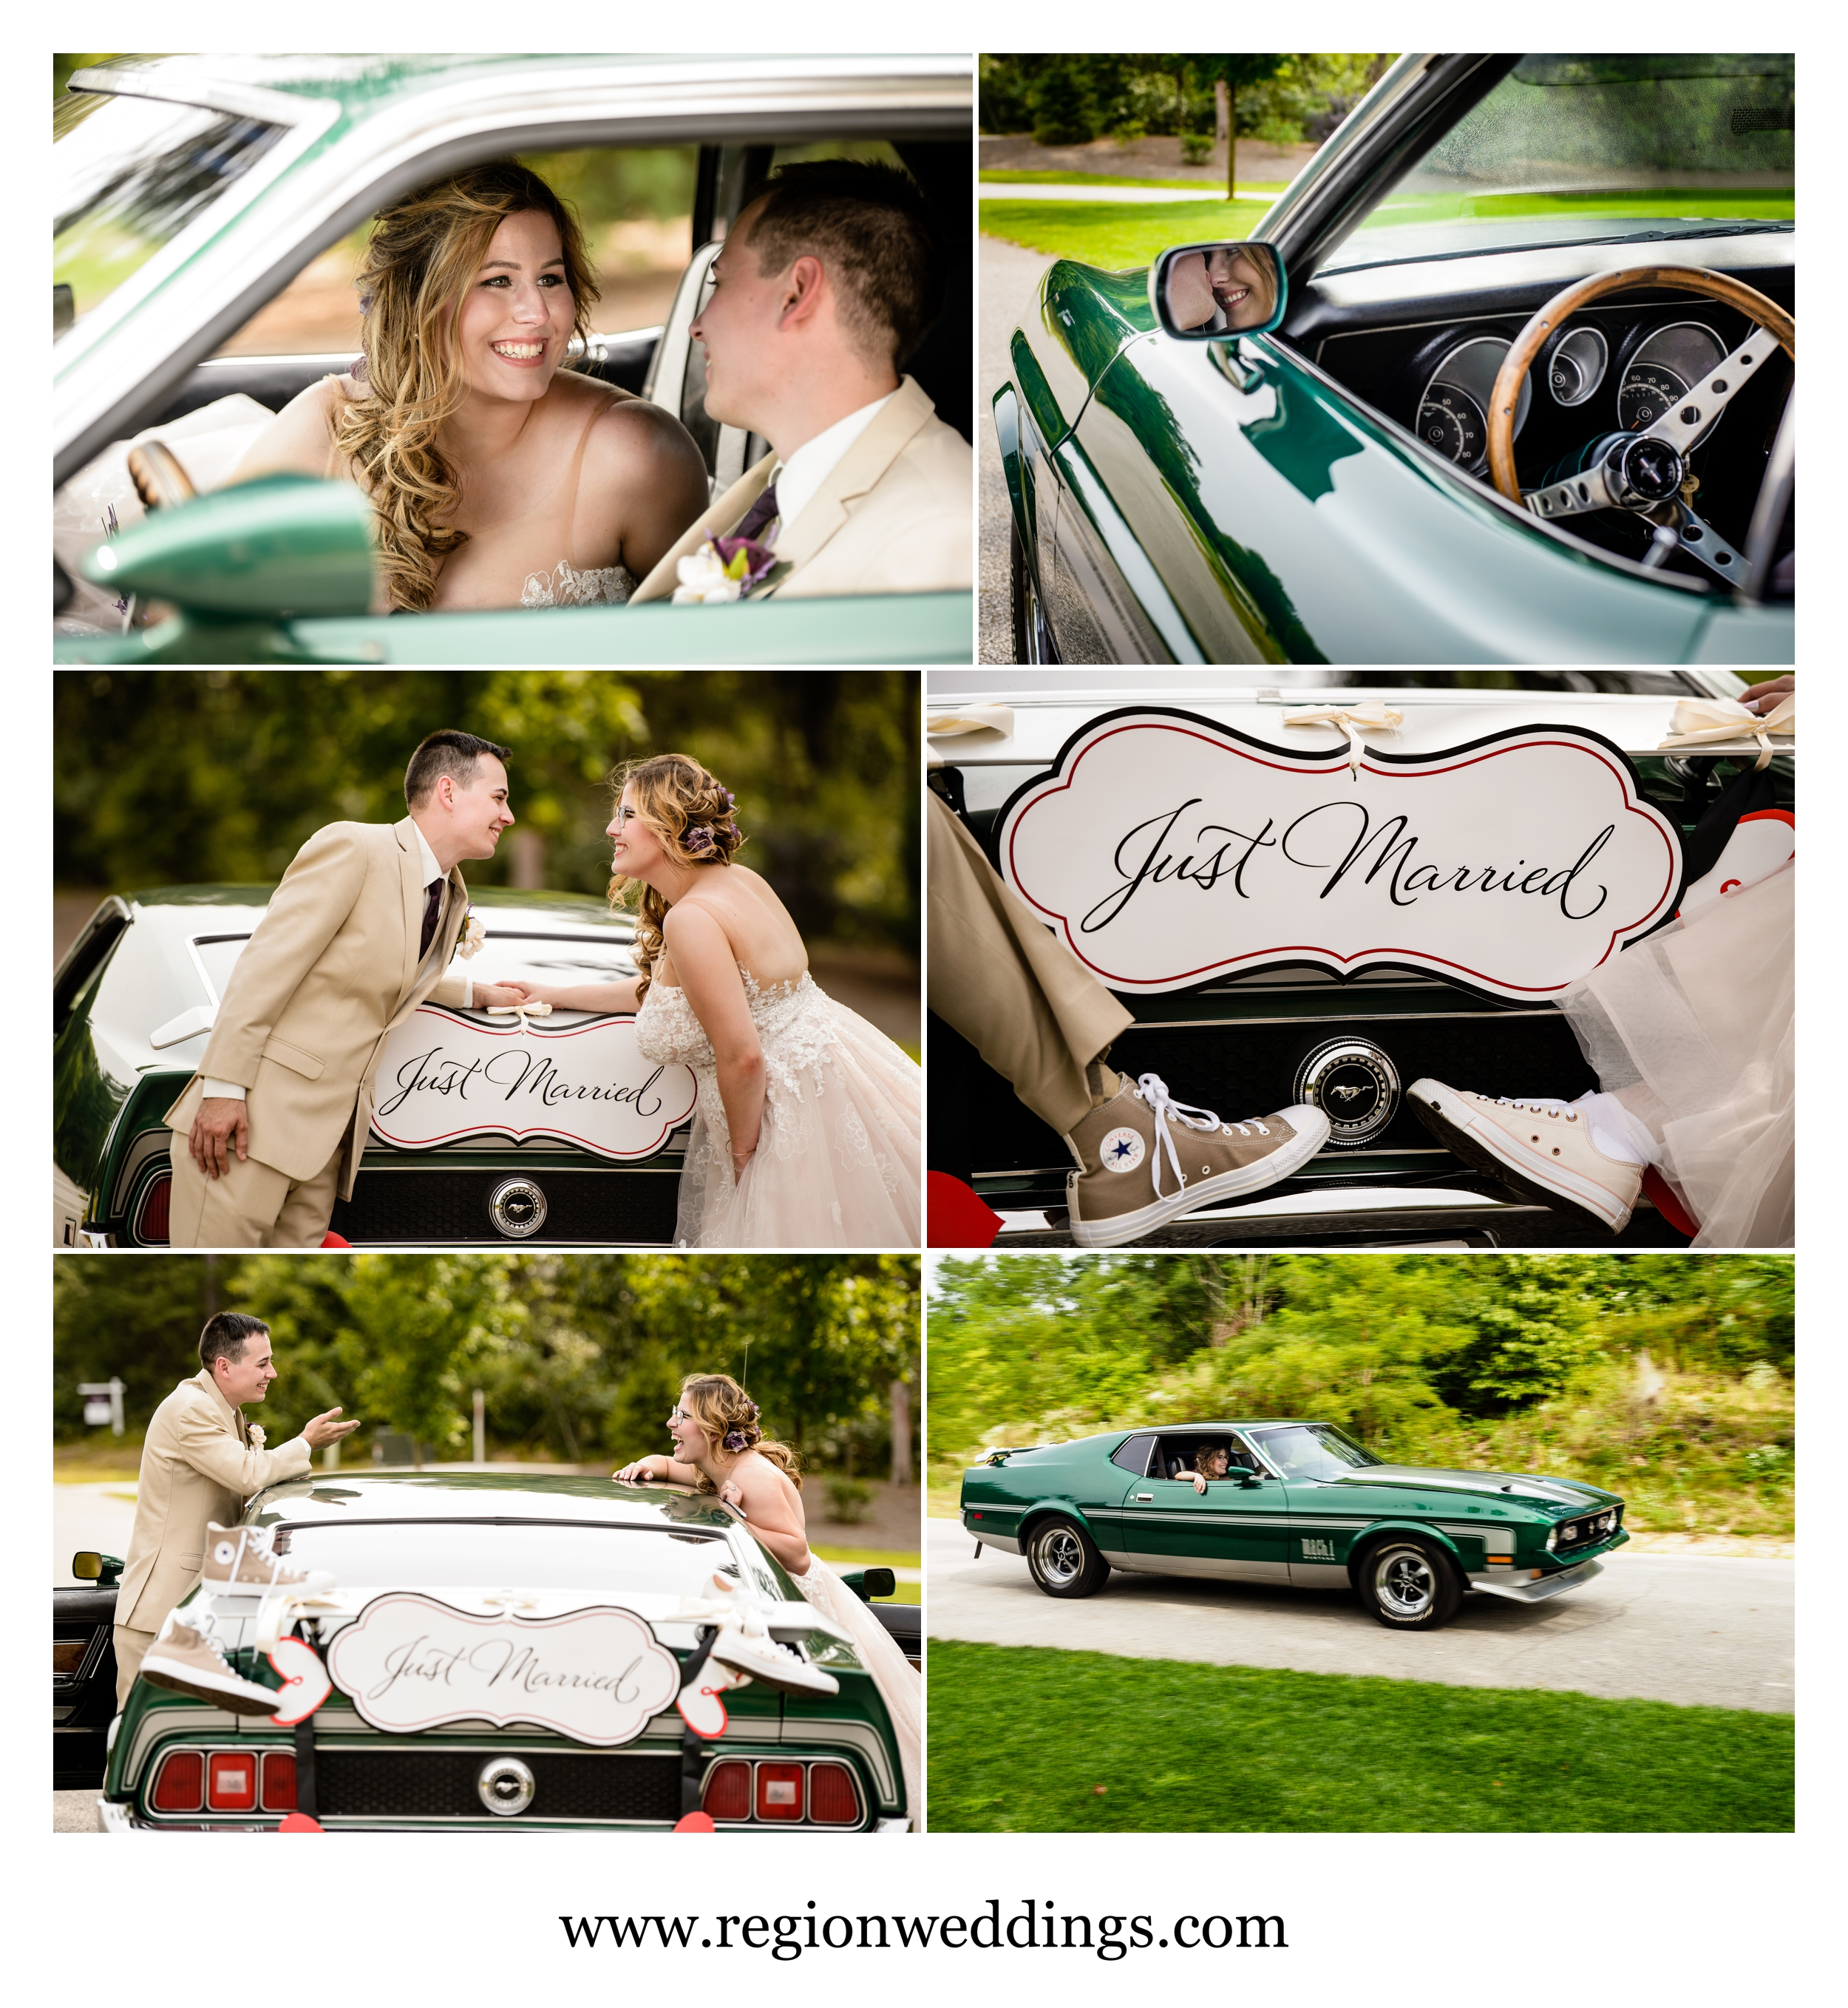 Classic car wedding photos in Demotte, Indiana.